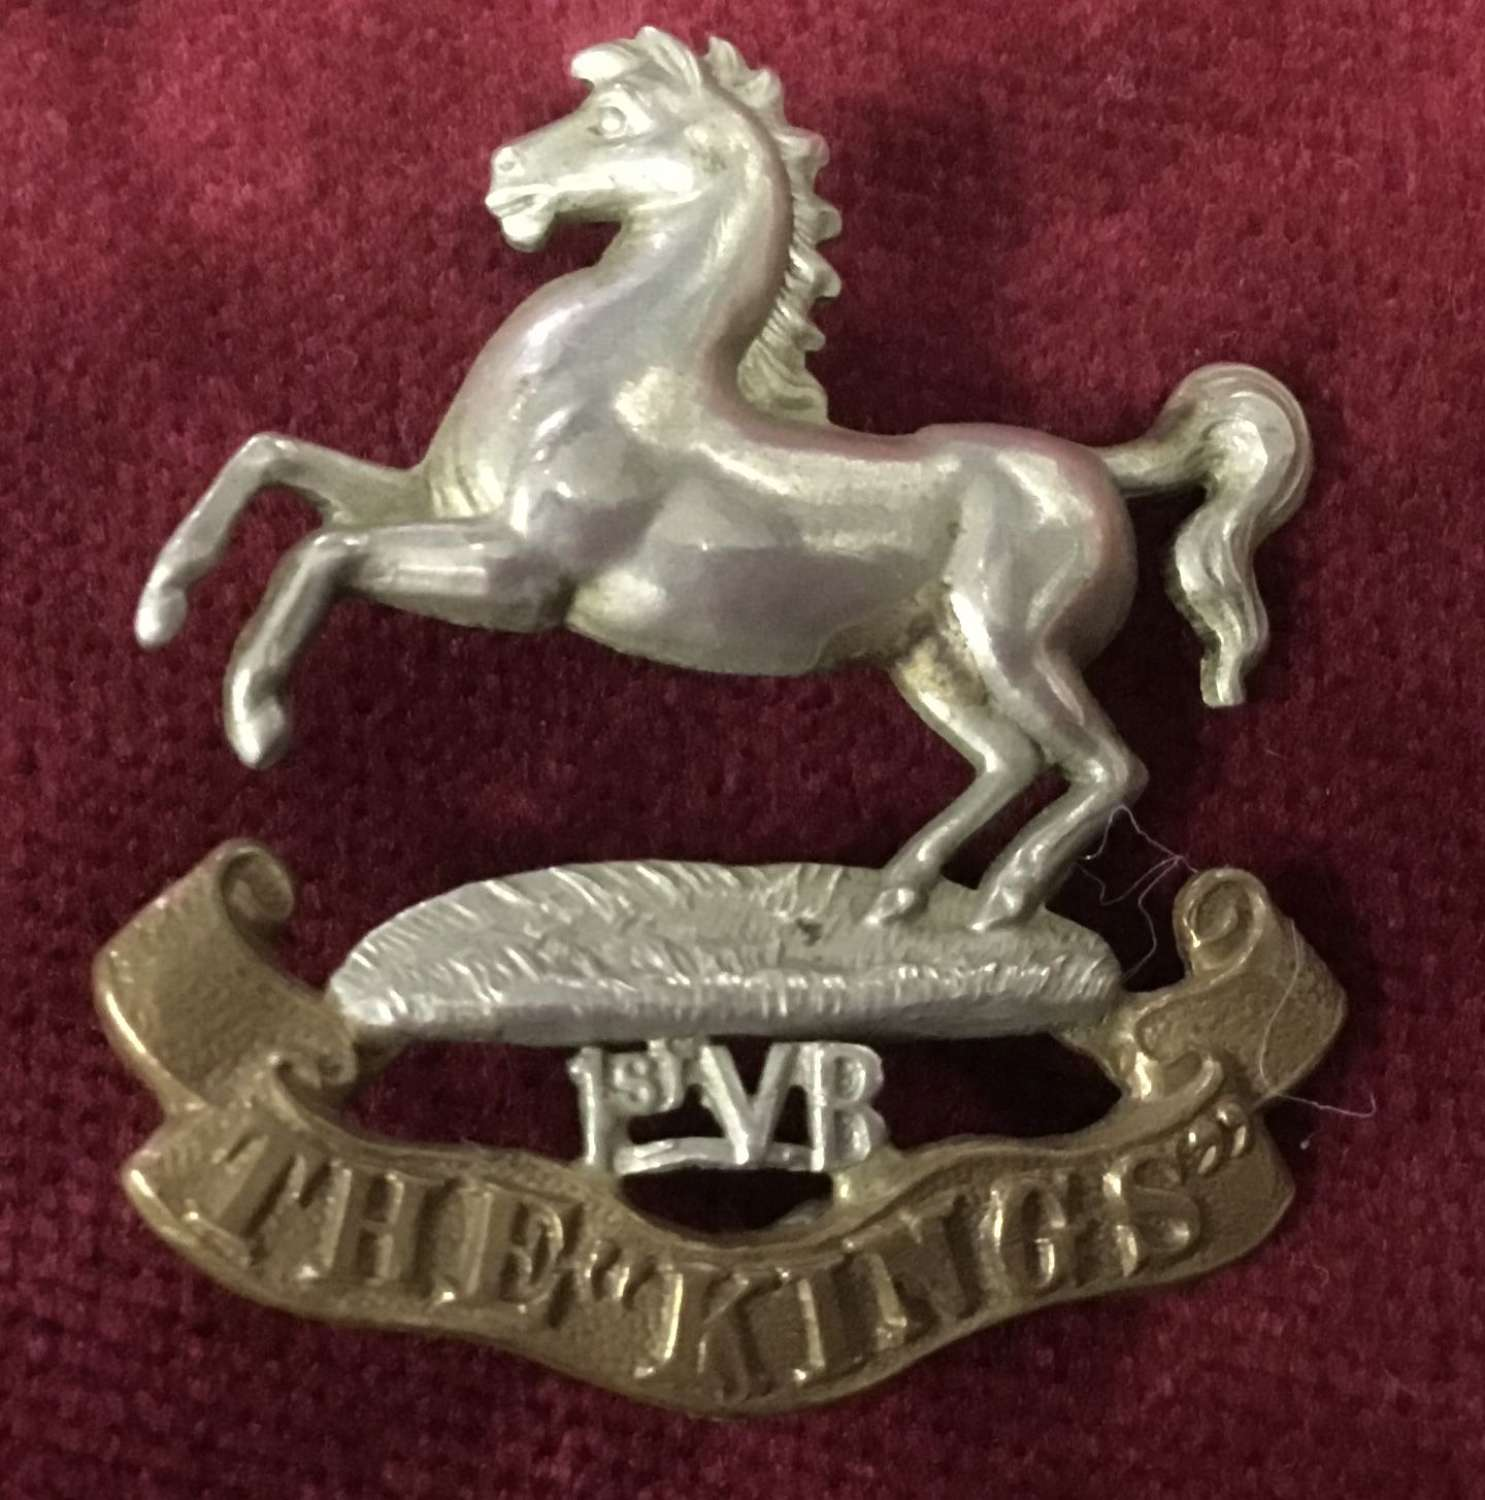 1st Volunteer Bn Kings Liverpool Regt cap badge